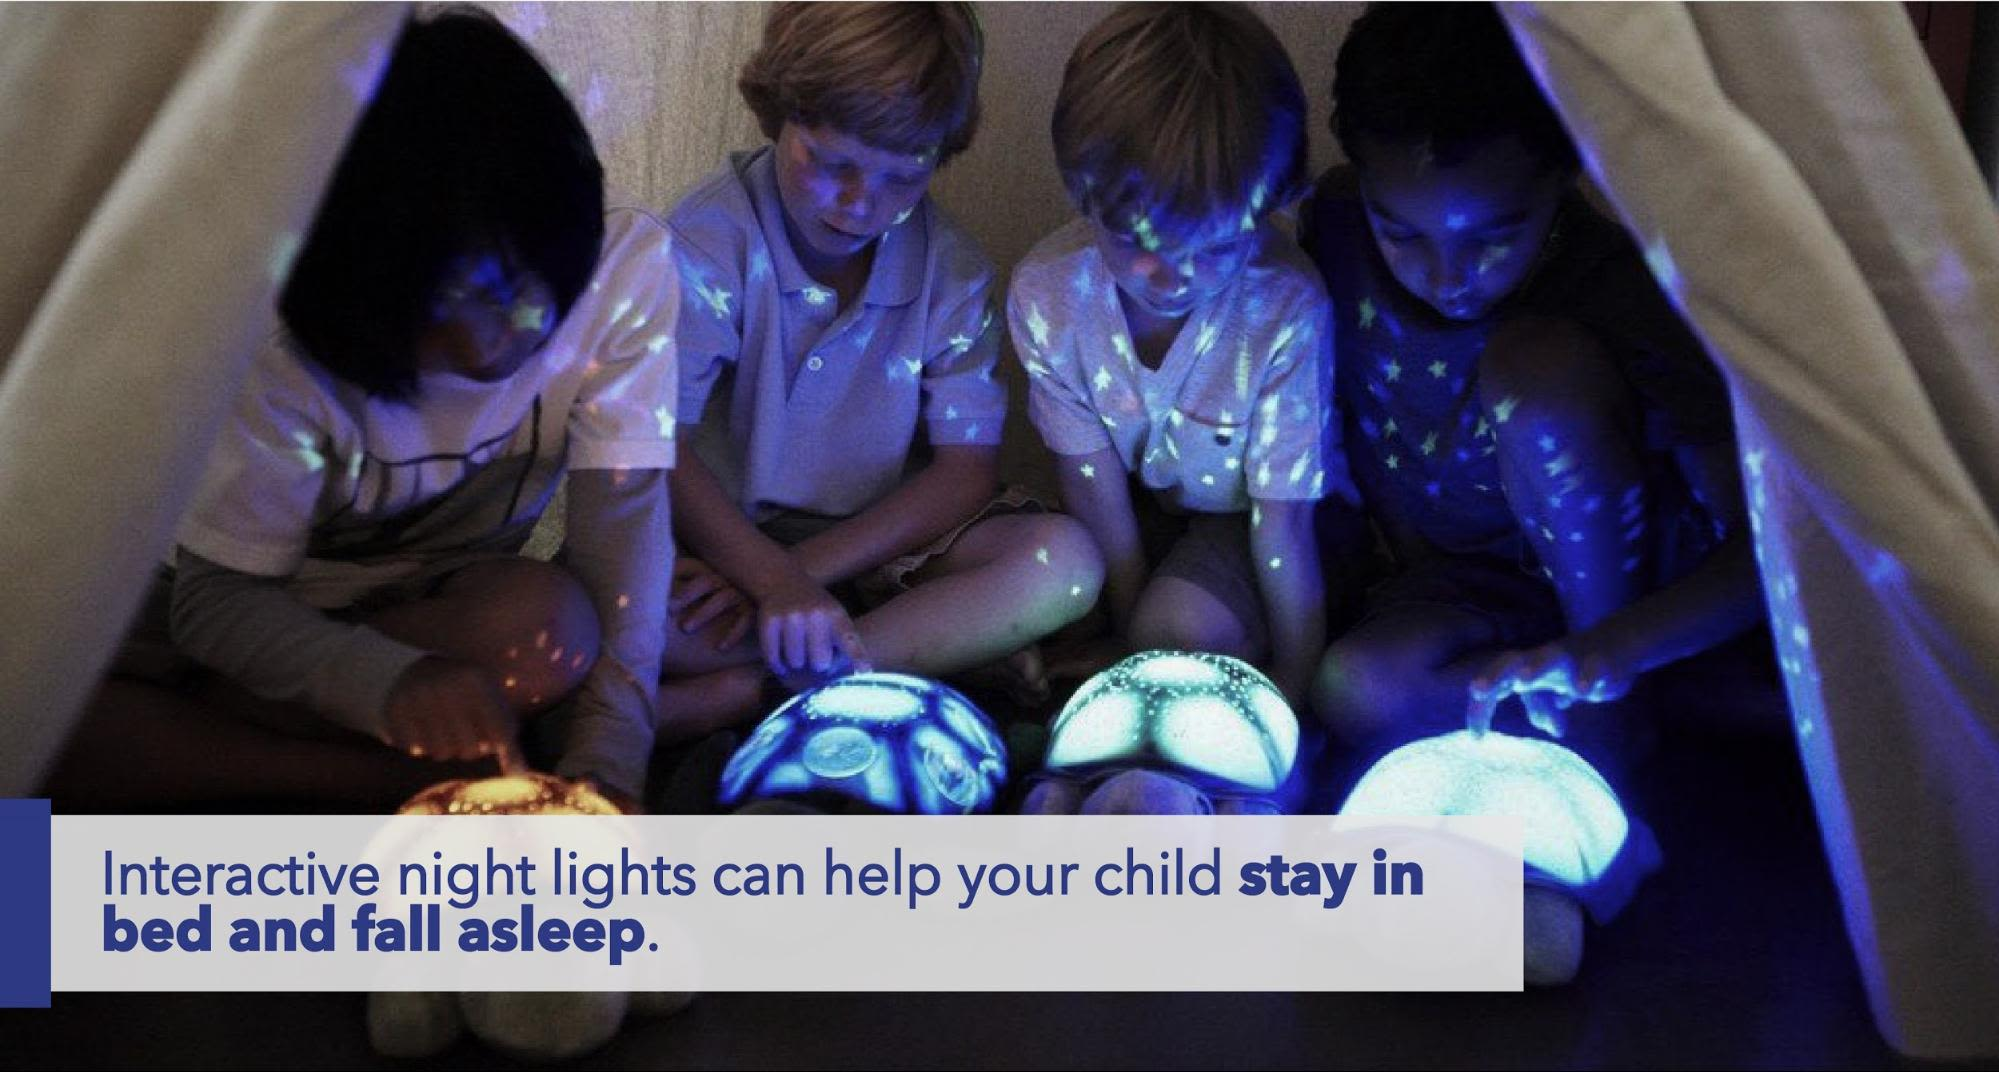 Interactive night lights can help your child stay in bed and fall asleep.